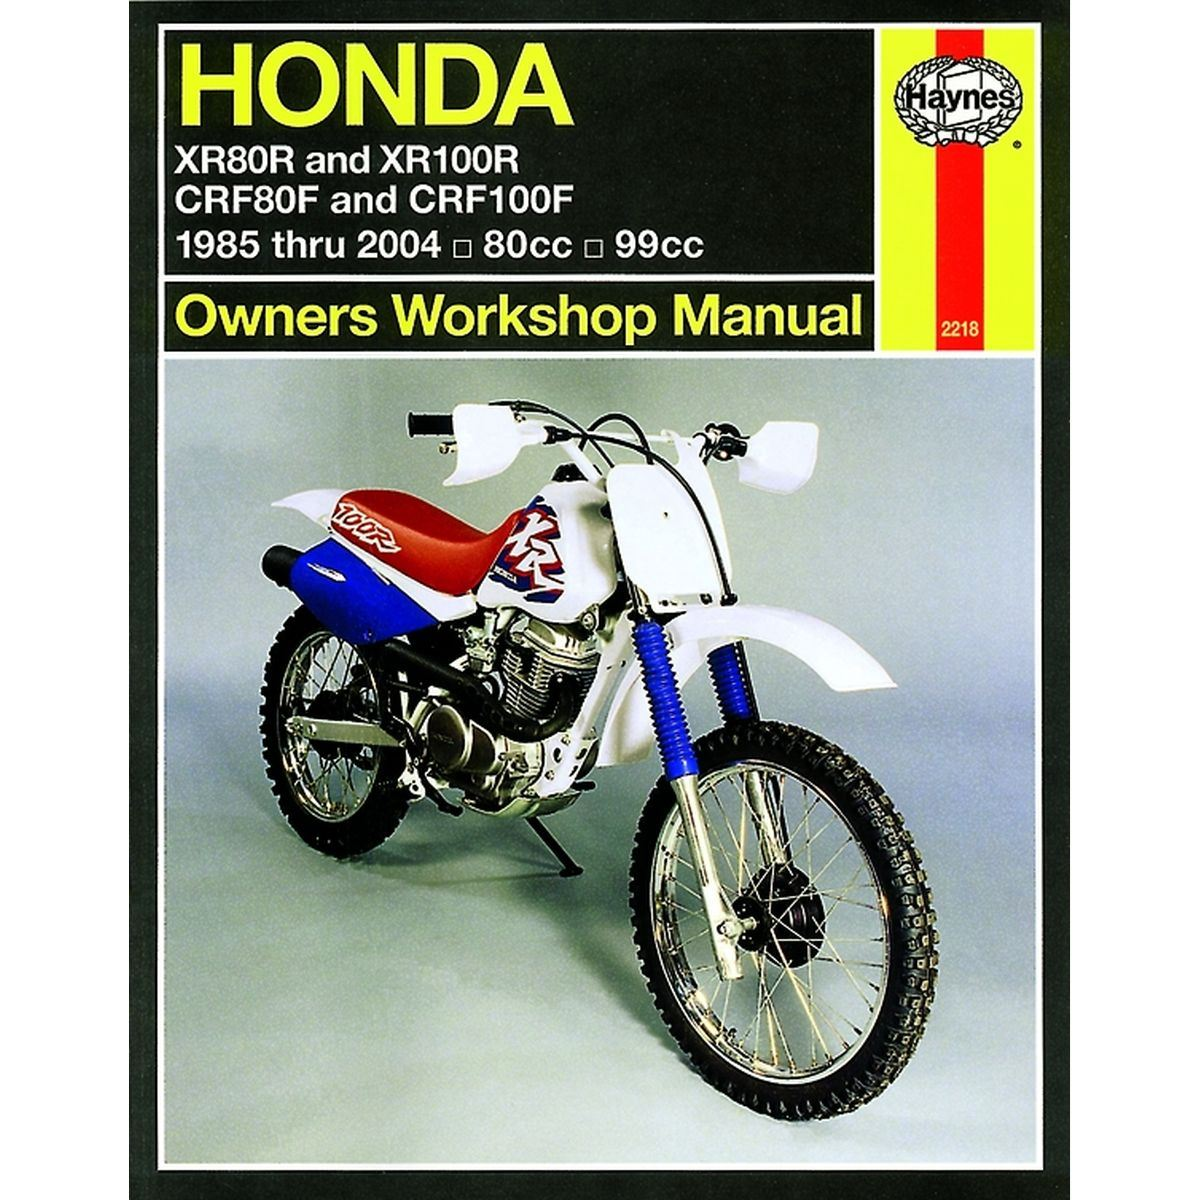 AW Motorcycle Parts. Haynes Manual 2218 HON XR80R & XR100R